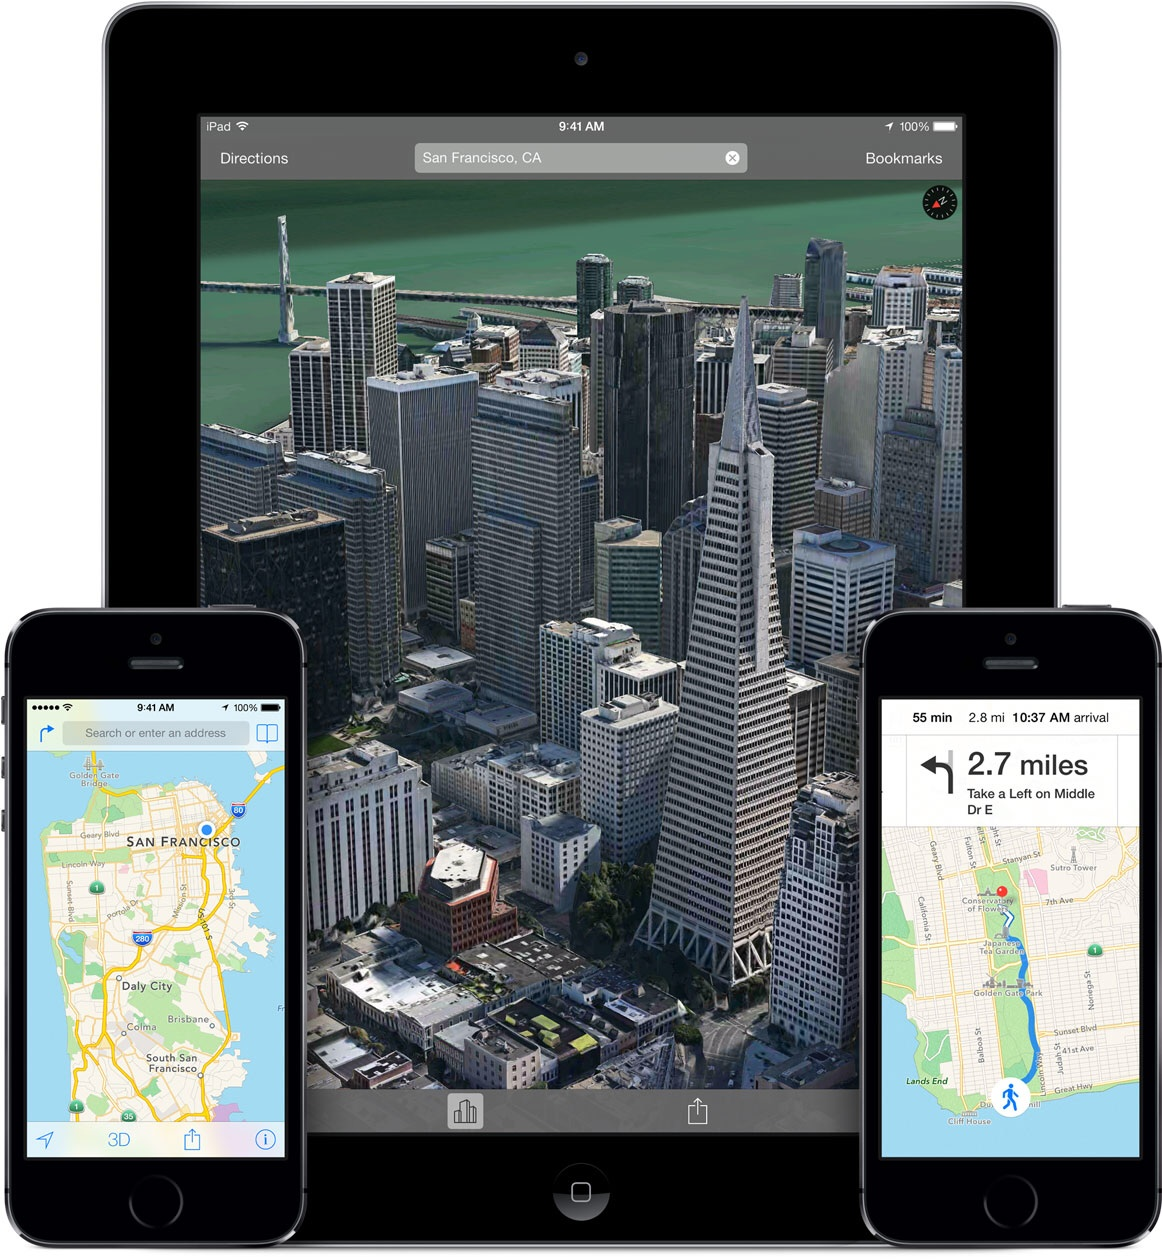 Apple's Maps team contacting business owners regarding user-submitted corrections